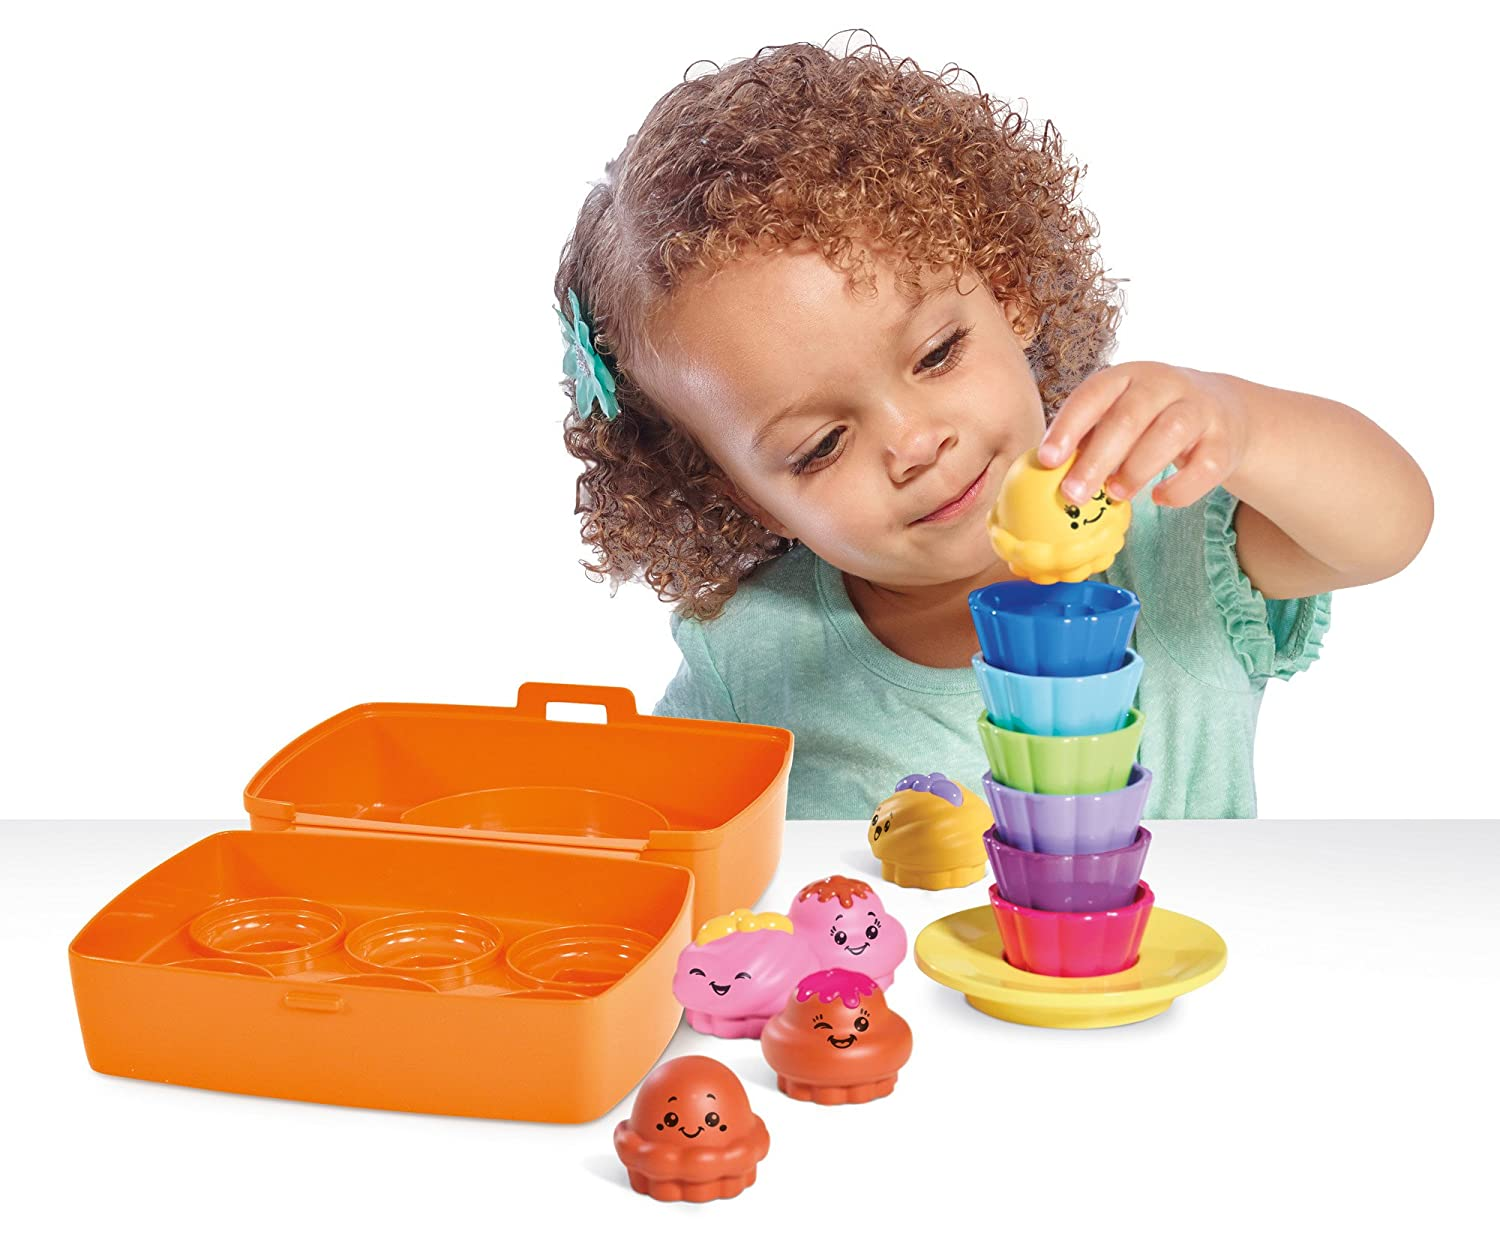 Baby Tomy Shake and Sort Cupcakes Activity Toy Role Play Educational for Kids/Toddler Baby Gear